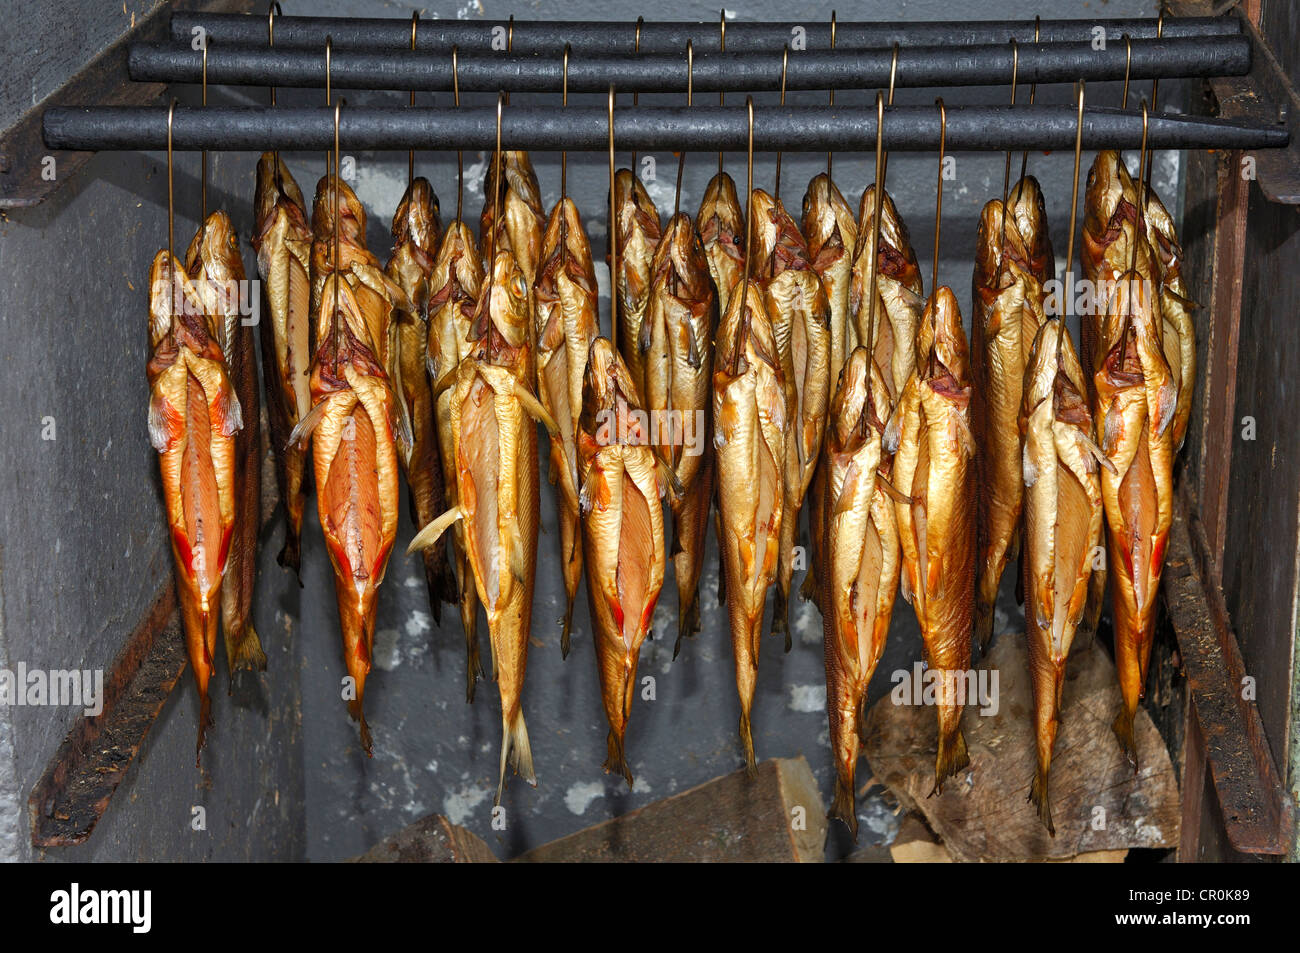 How to smoke fish in smokehouse What can smoke fish 2